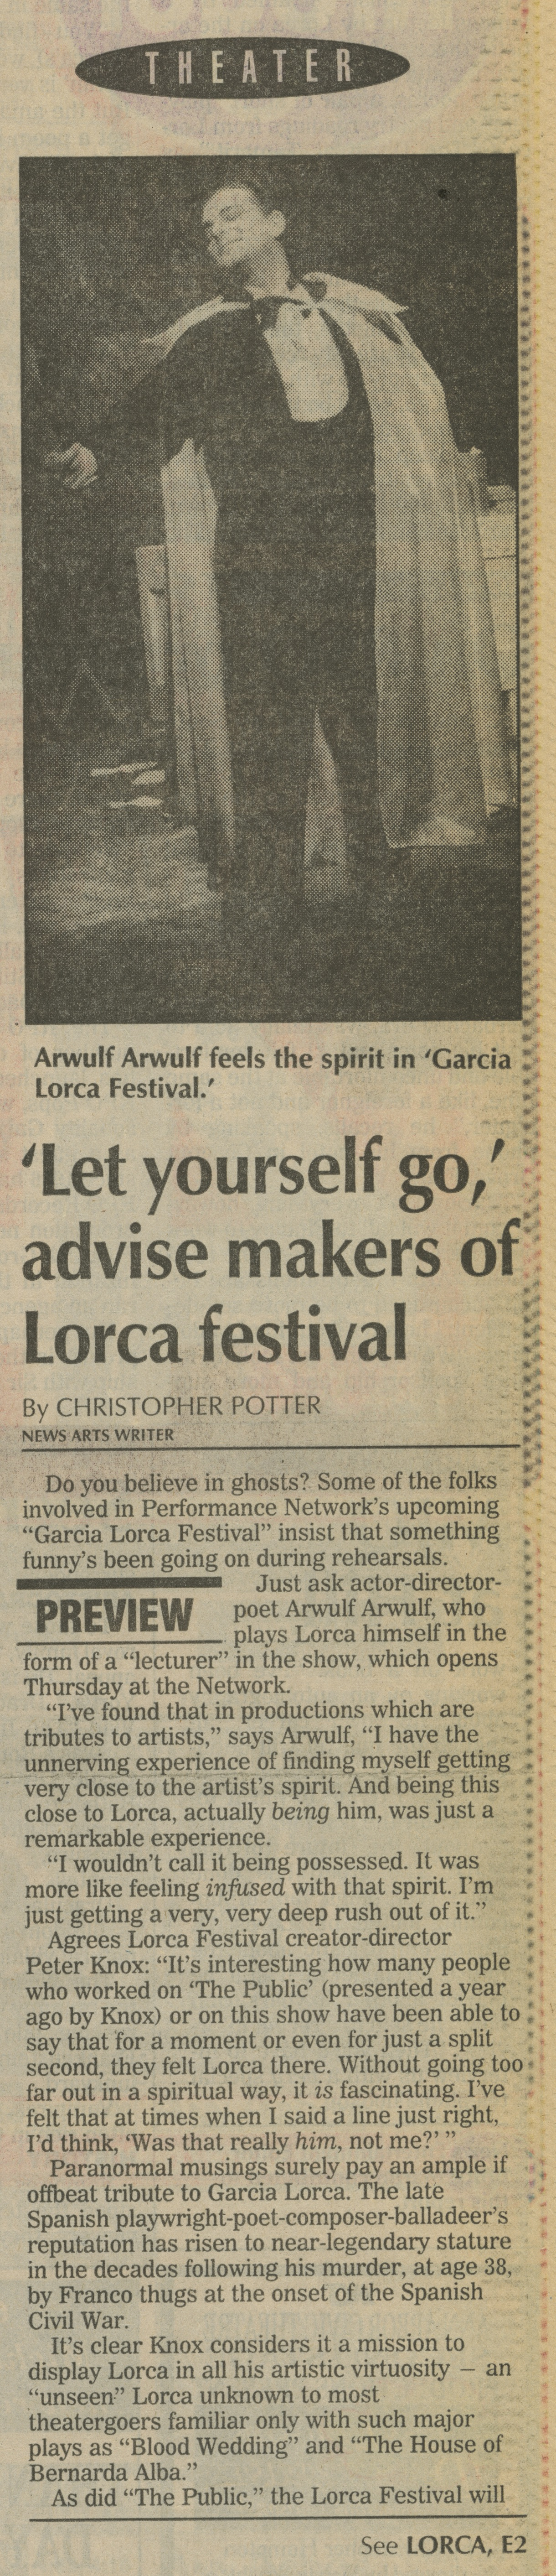 'Let yourself go,' advise makers of Lorca festival image